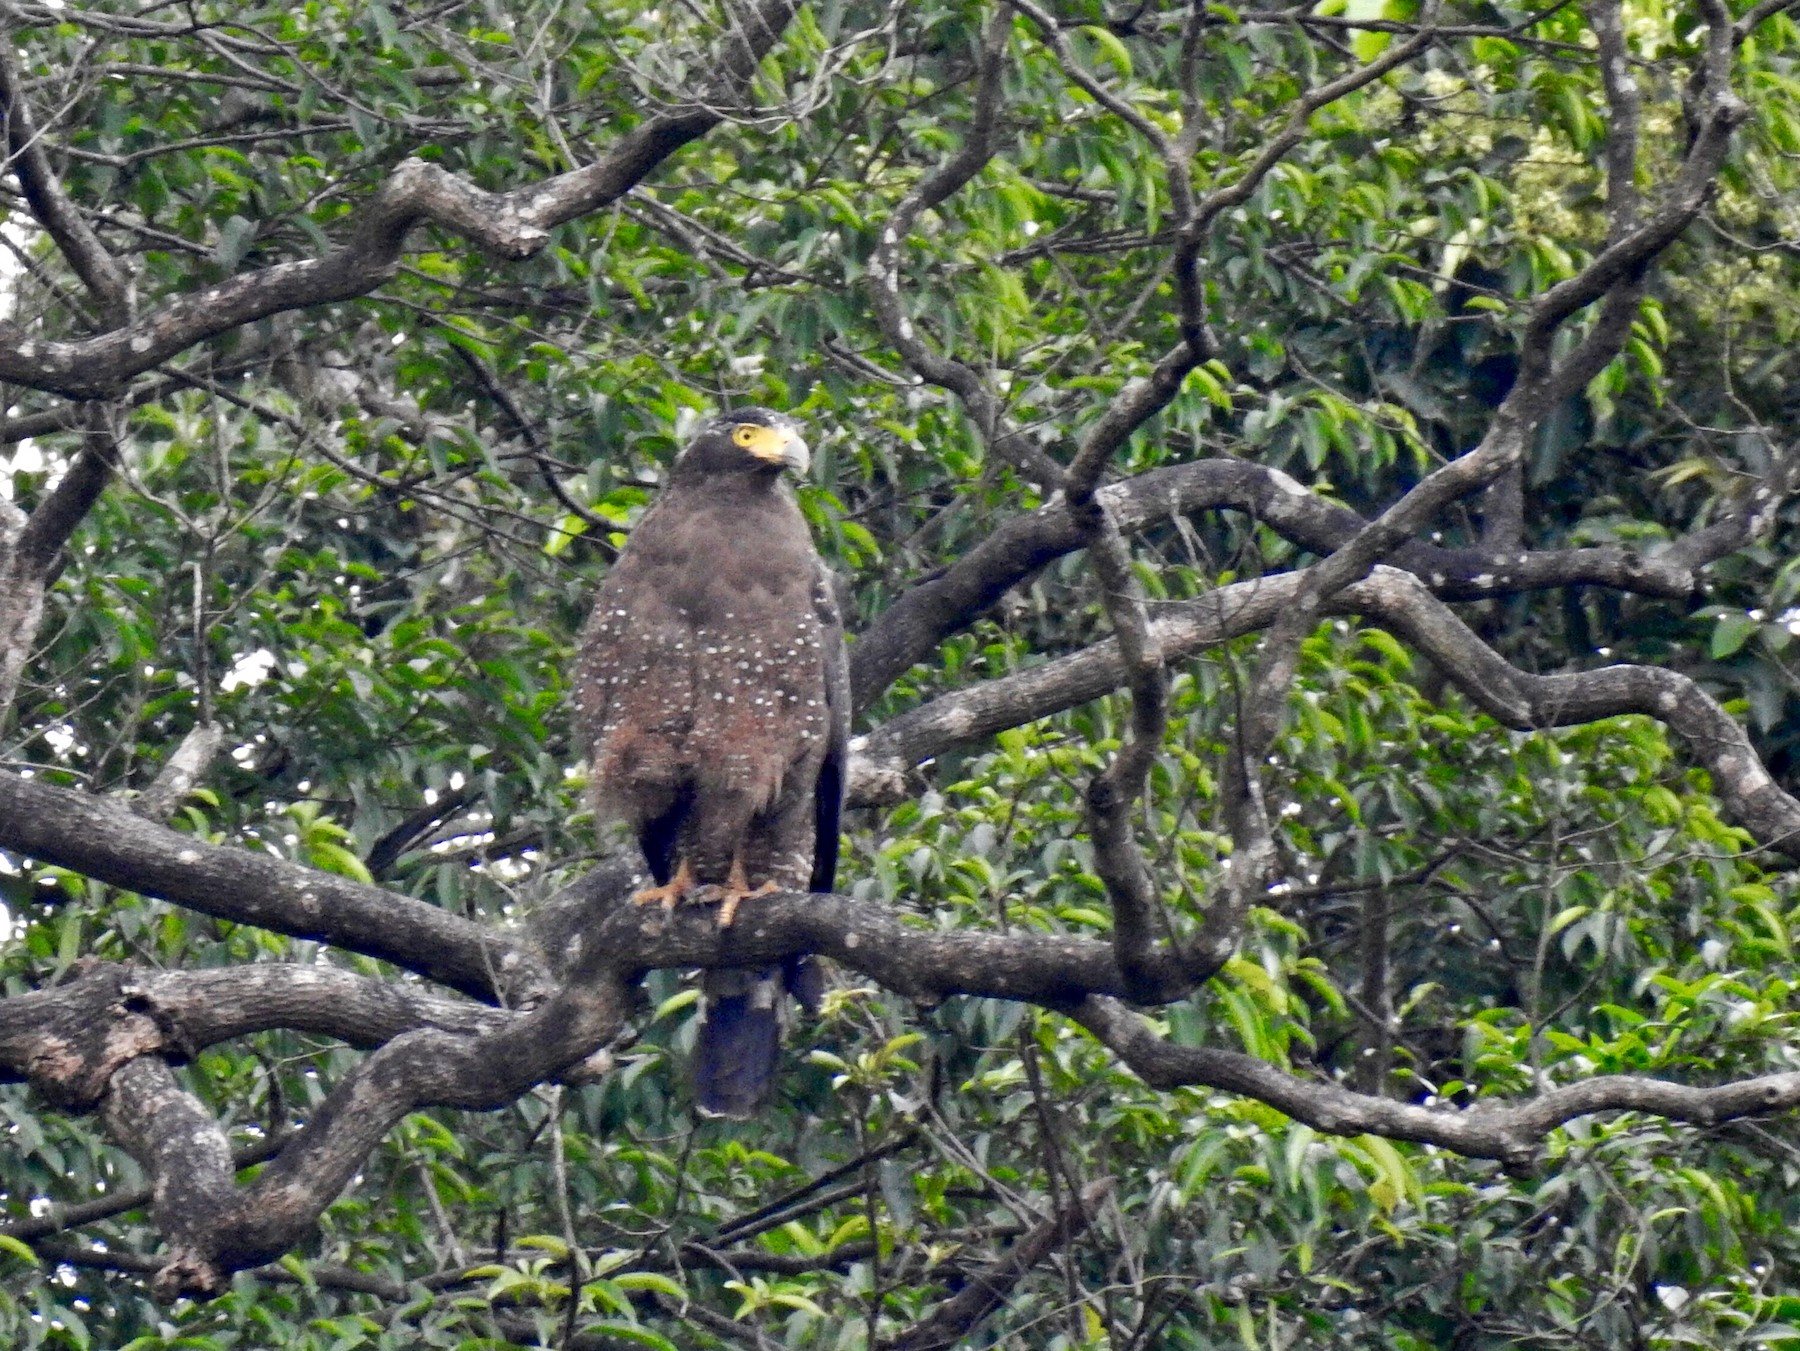 Crested Serpent-Eagle - SJ Shyong